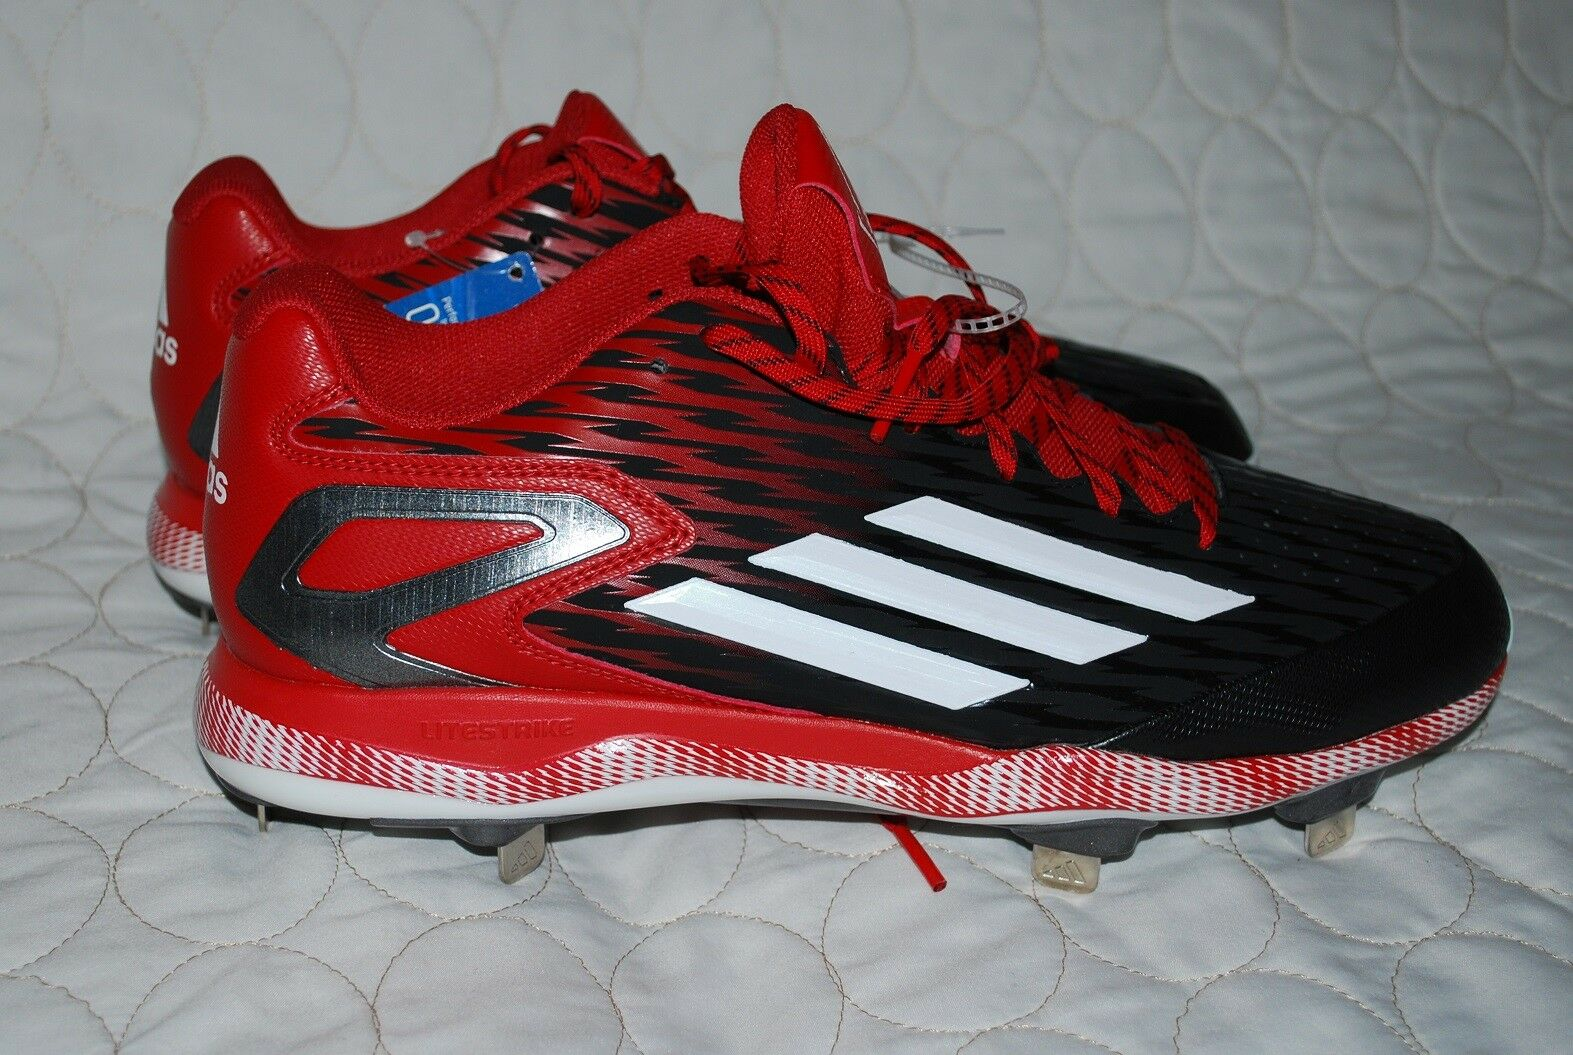 Adidas Baseball Football Soccer Cleats Uomo Size 12 New *Just Give Your Offer*